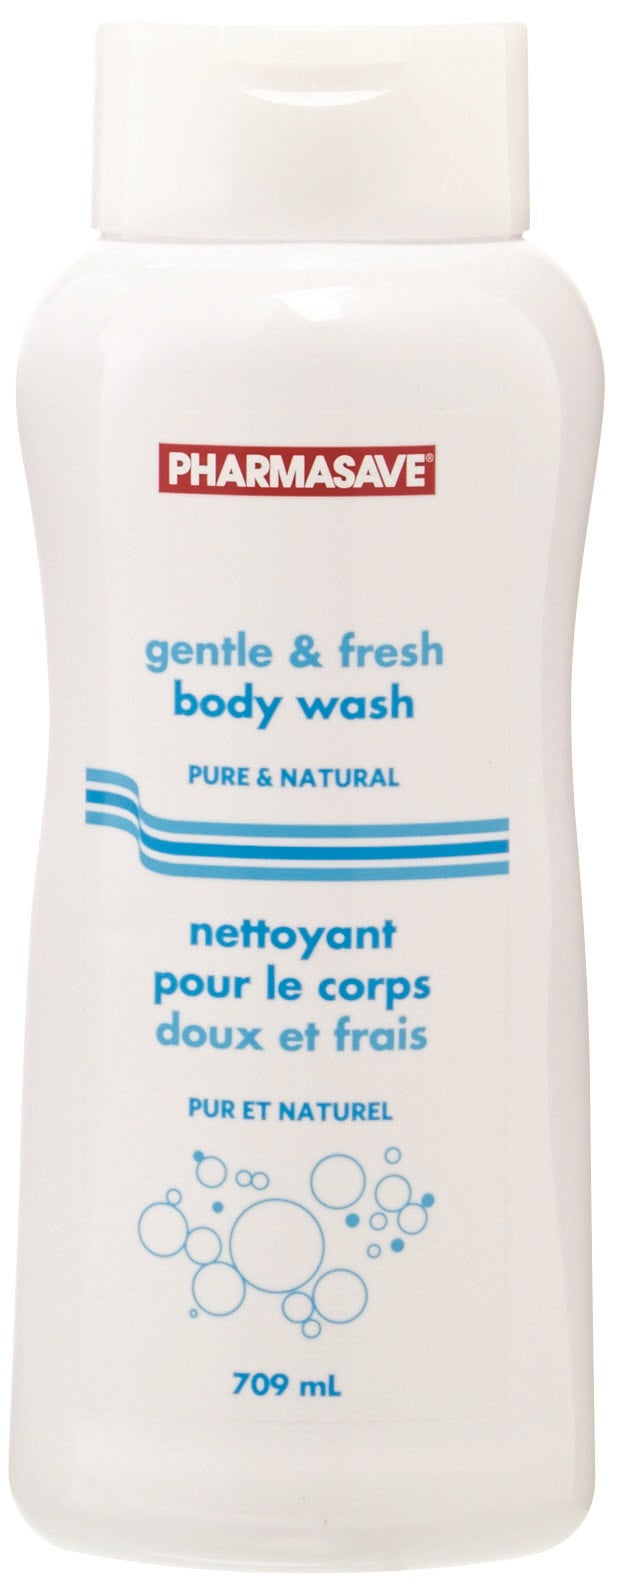 Pharmasave Gentle & Fresh Body Wash Pure & Natural - Simpsons Pharmacy